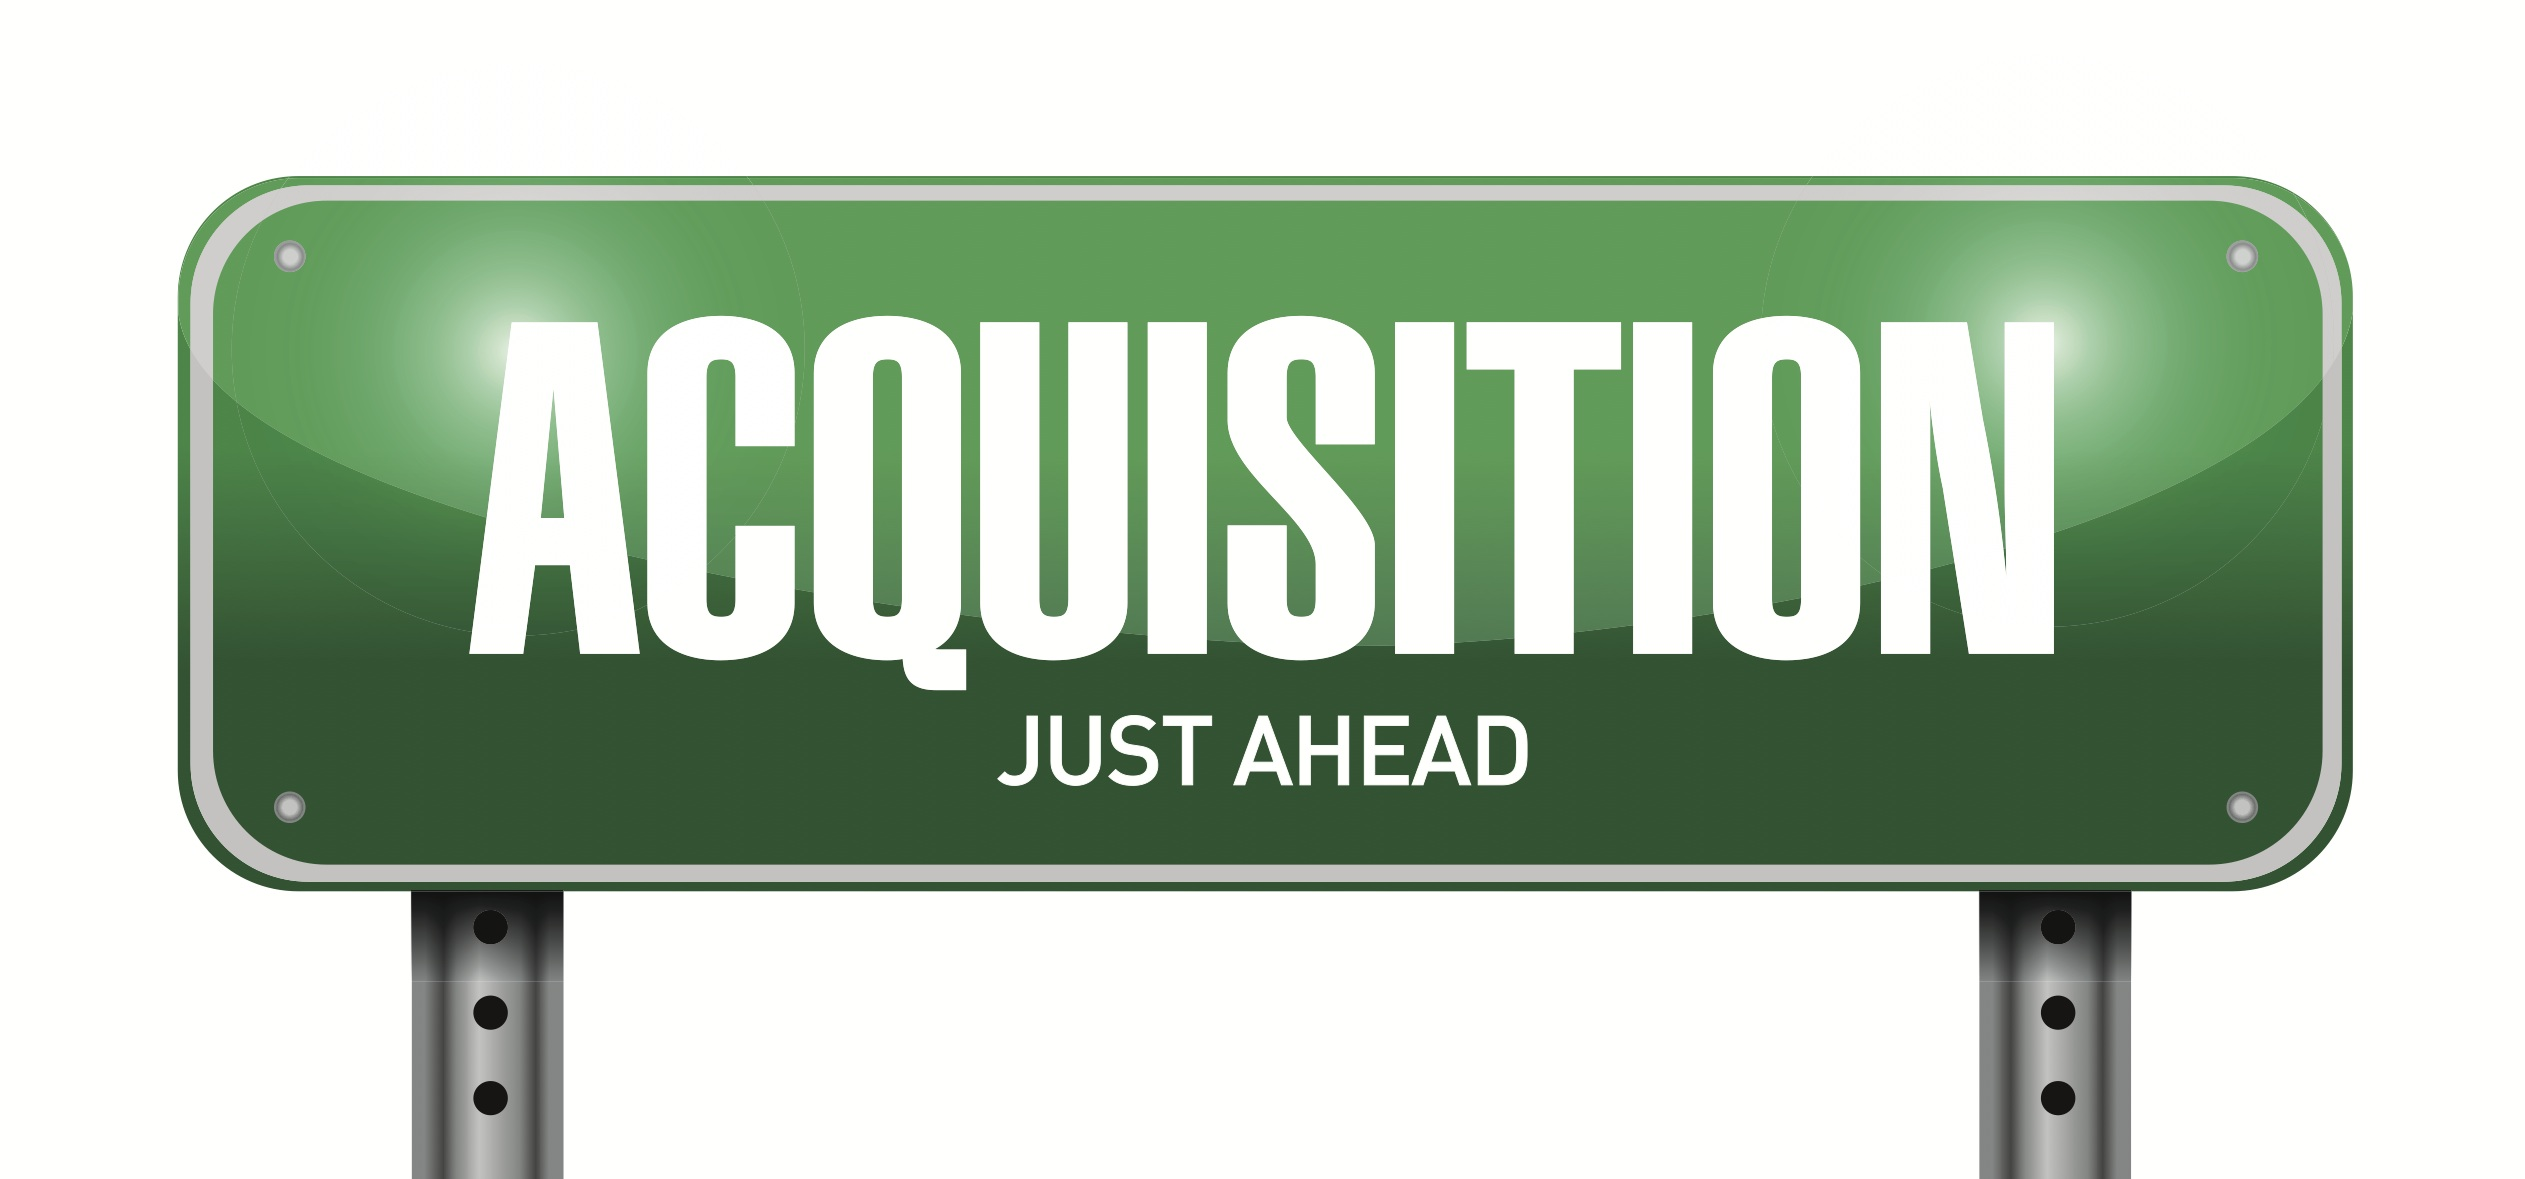 Acquisitions? Yes, you can!